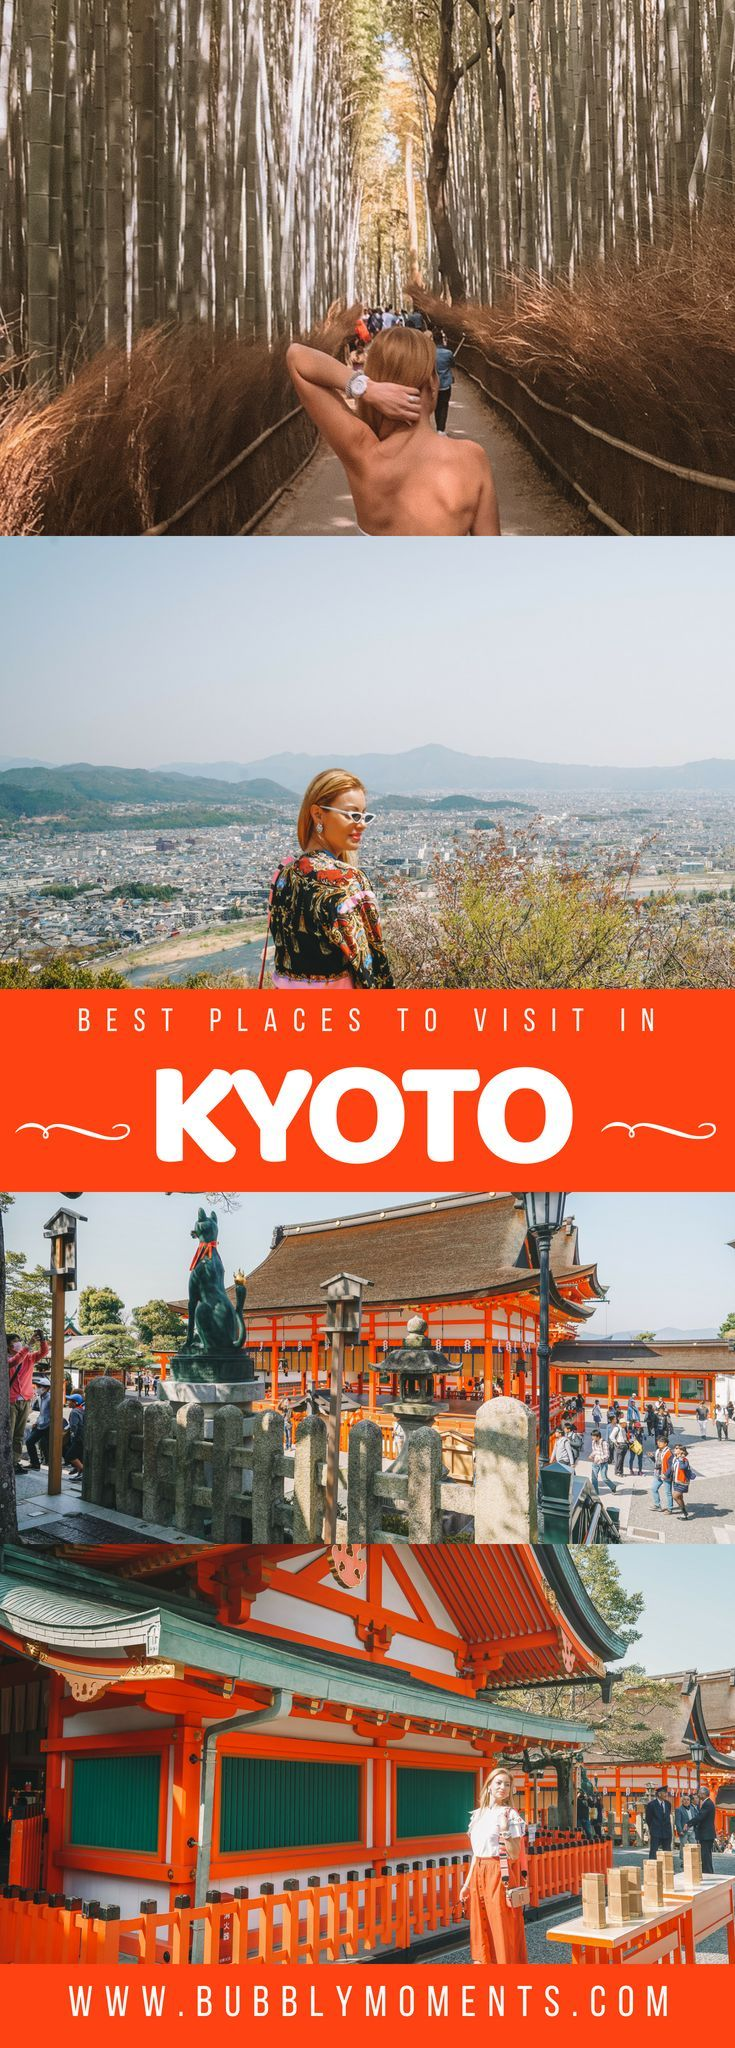 Discover the best places to visit in Kyoto. Let me guide you through the top Kyoto attractions to see in 2 days | Kinkaku-ji Temple | Fushimi Inari Shrine | Arashiyama Bamboo Grove and Monkey Park Iwatayama | 2 days in Kyoto | Things to Do in Kyoto | Japan | Travel | Travel Photography | Bubbly Moments #kyoto #japan #kinkakuji #fushimiinari #shrine #travel #arashiyama #travelblog #travelblogger #chicagoblogger